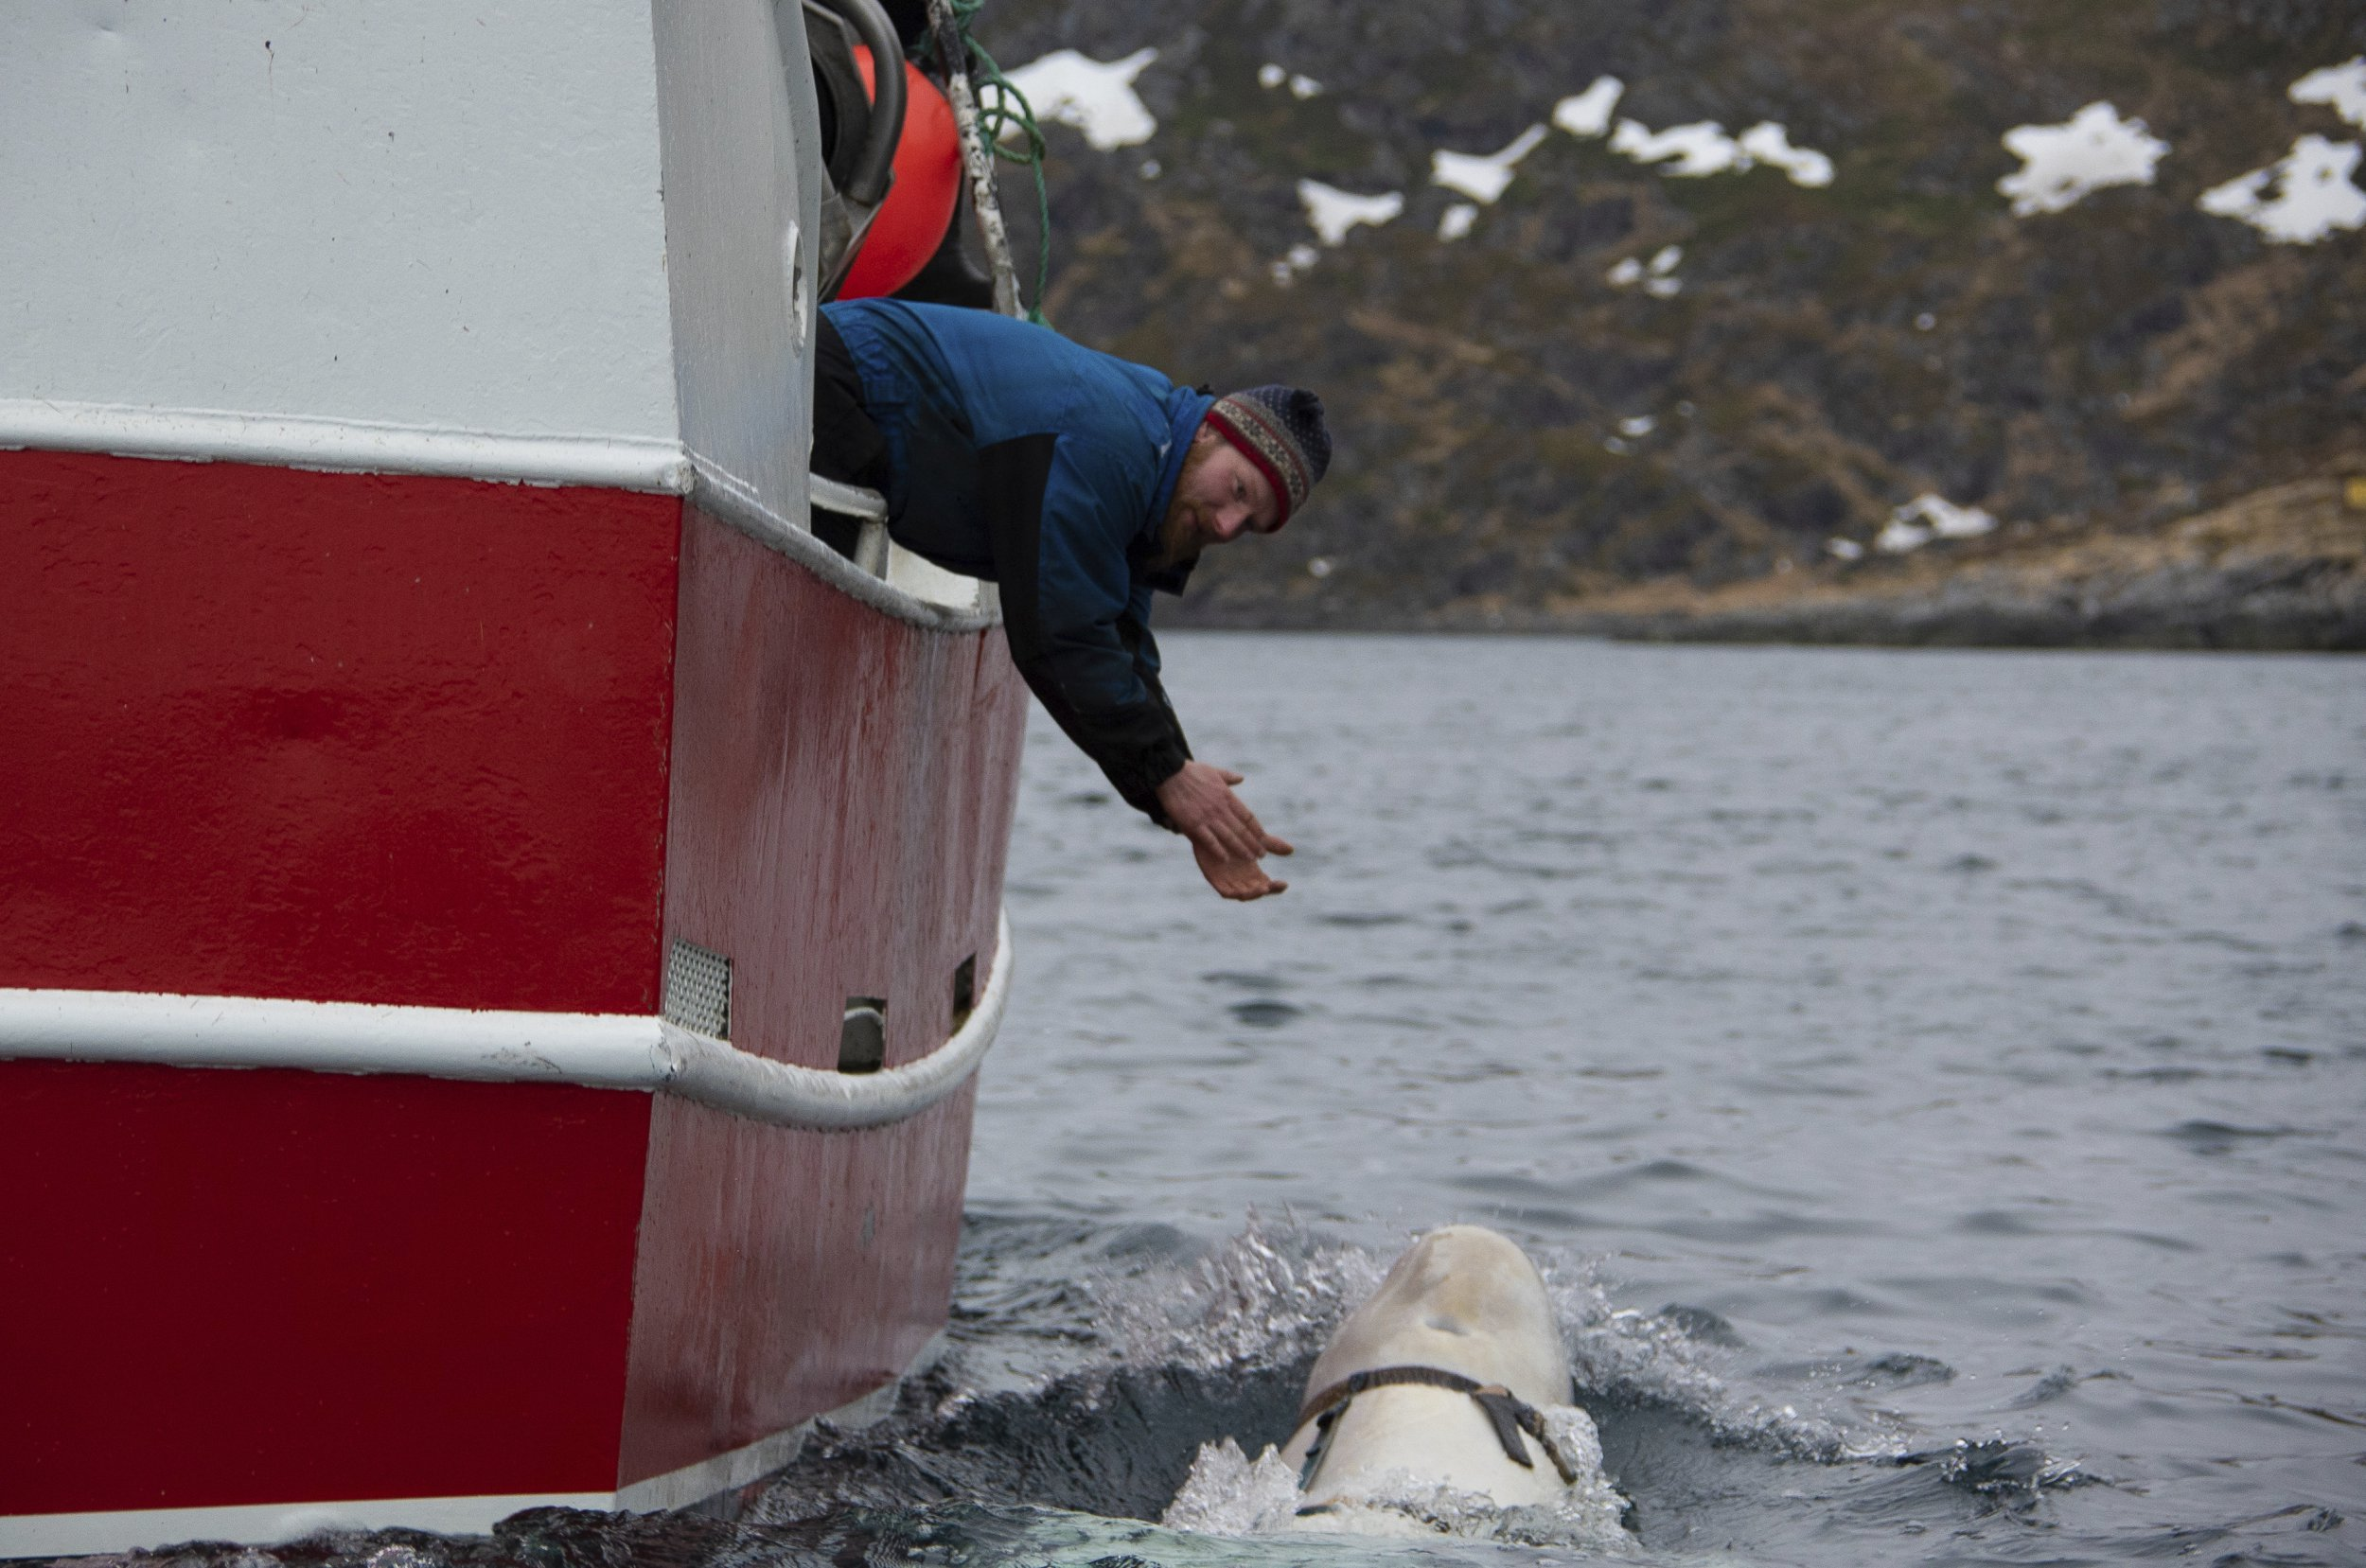 "Norwegian fisherman Joar Hesten tries to attract a beluga whale swimming next to his boat before the Norwegian fishermen were able to removed the tight harness, off the northern Norwegian coast Friday, April 26, 2019. The harness strap which features a mount for an action camera, says ""Equipment St. Petersburg"" which has prompted speculation that the animal may have escaped from a Russian military facility. (Joergen Ree Wiig/Norwegian Direcorate of Fisheries Sea Surveillance Unit via AP)"